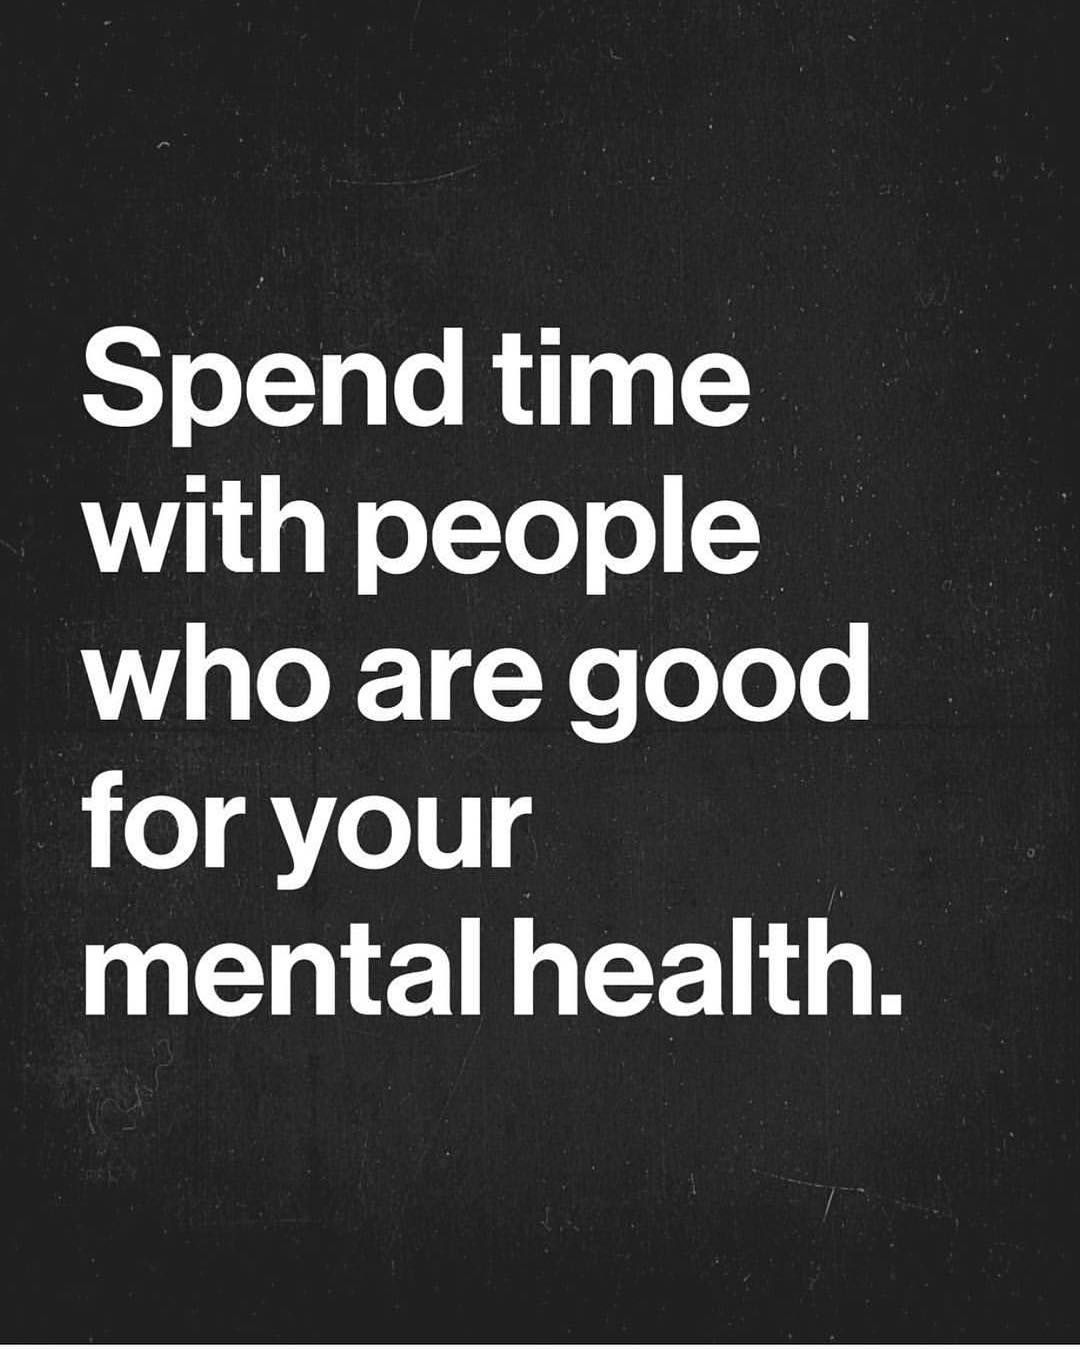 spend time with people who are good for your health motivational